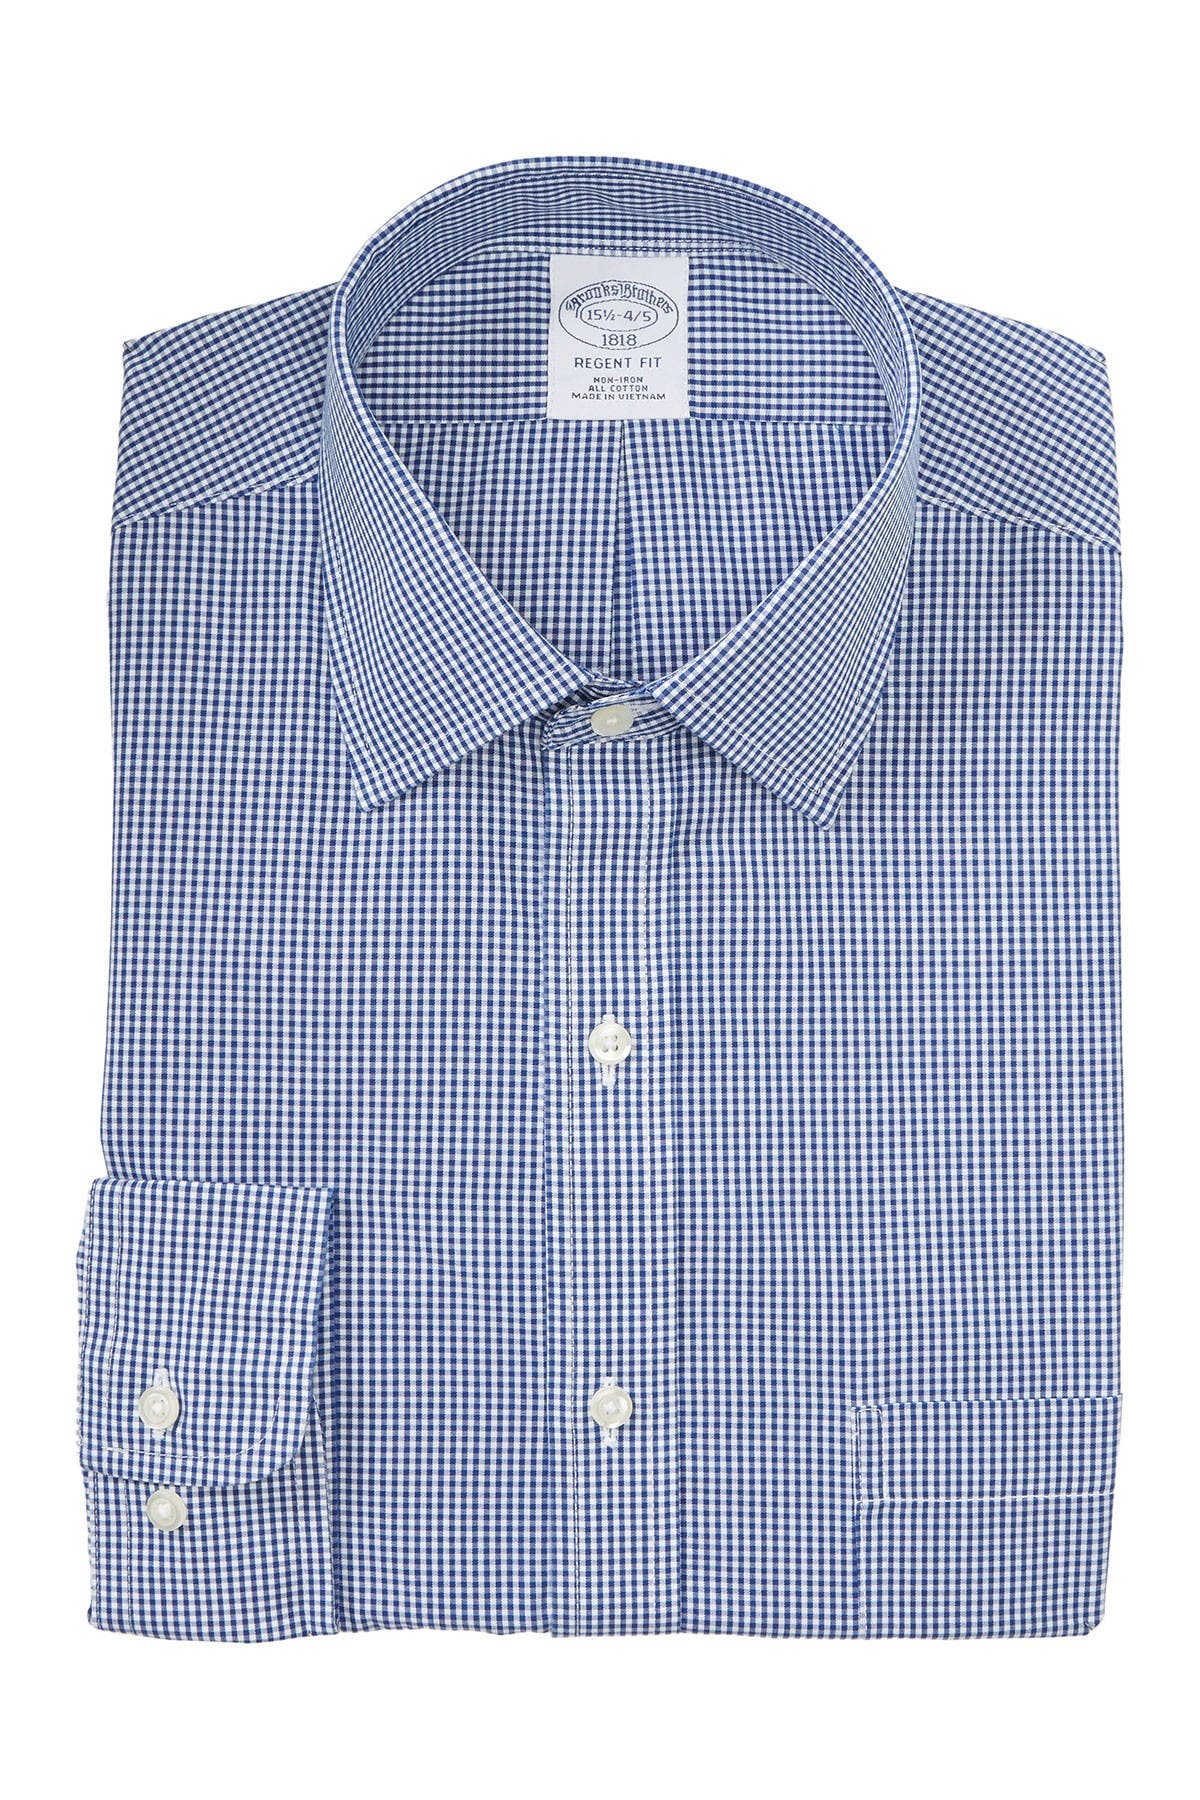 Image of Brooks Brothers Gingham Print Non-Iron Regent Fit Dress Shirt